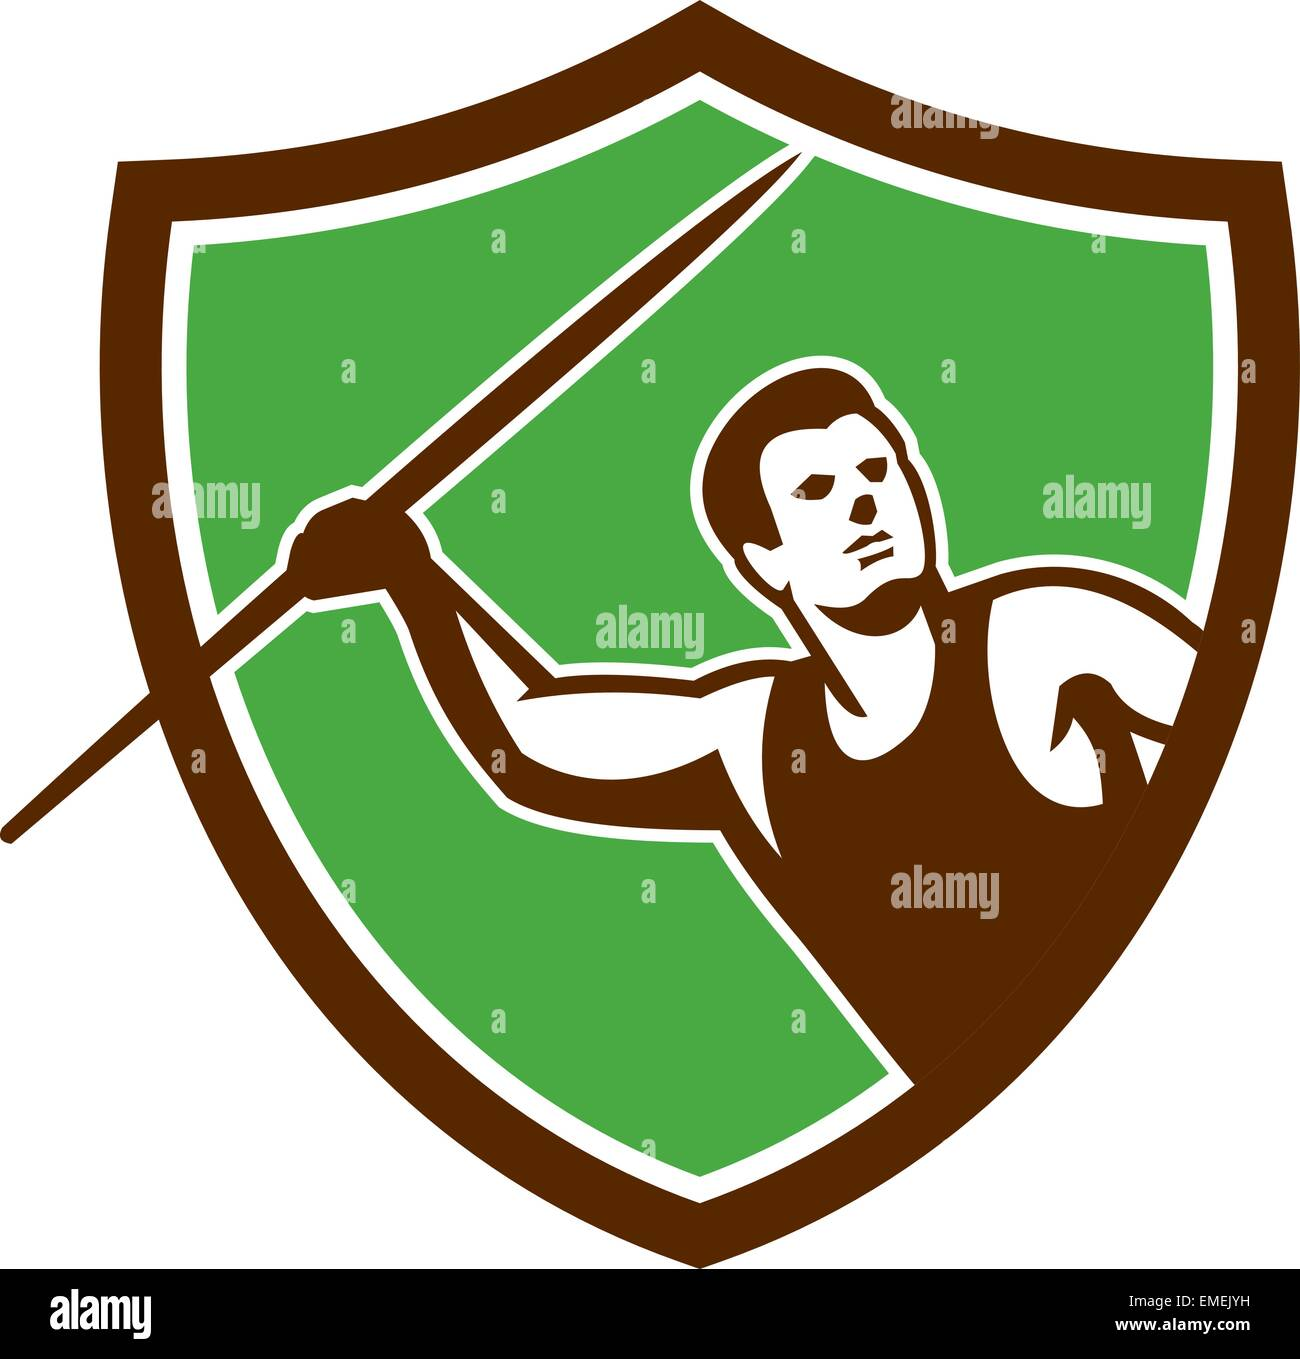 Javelin Throw Track and Field Athlete Shield Stock Vector